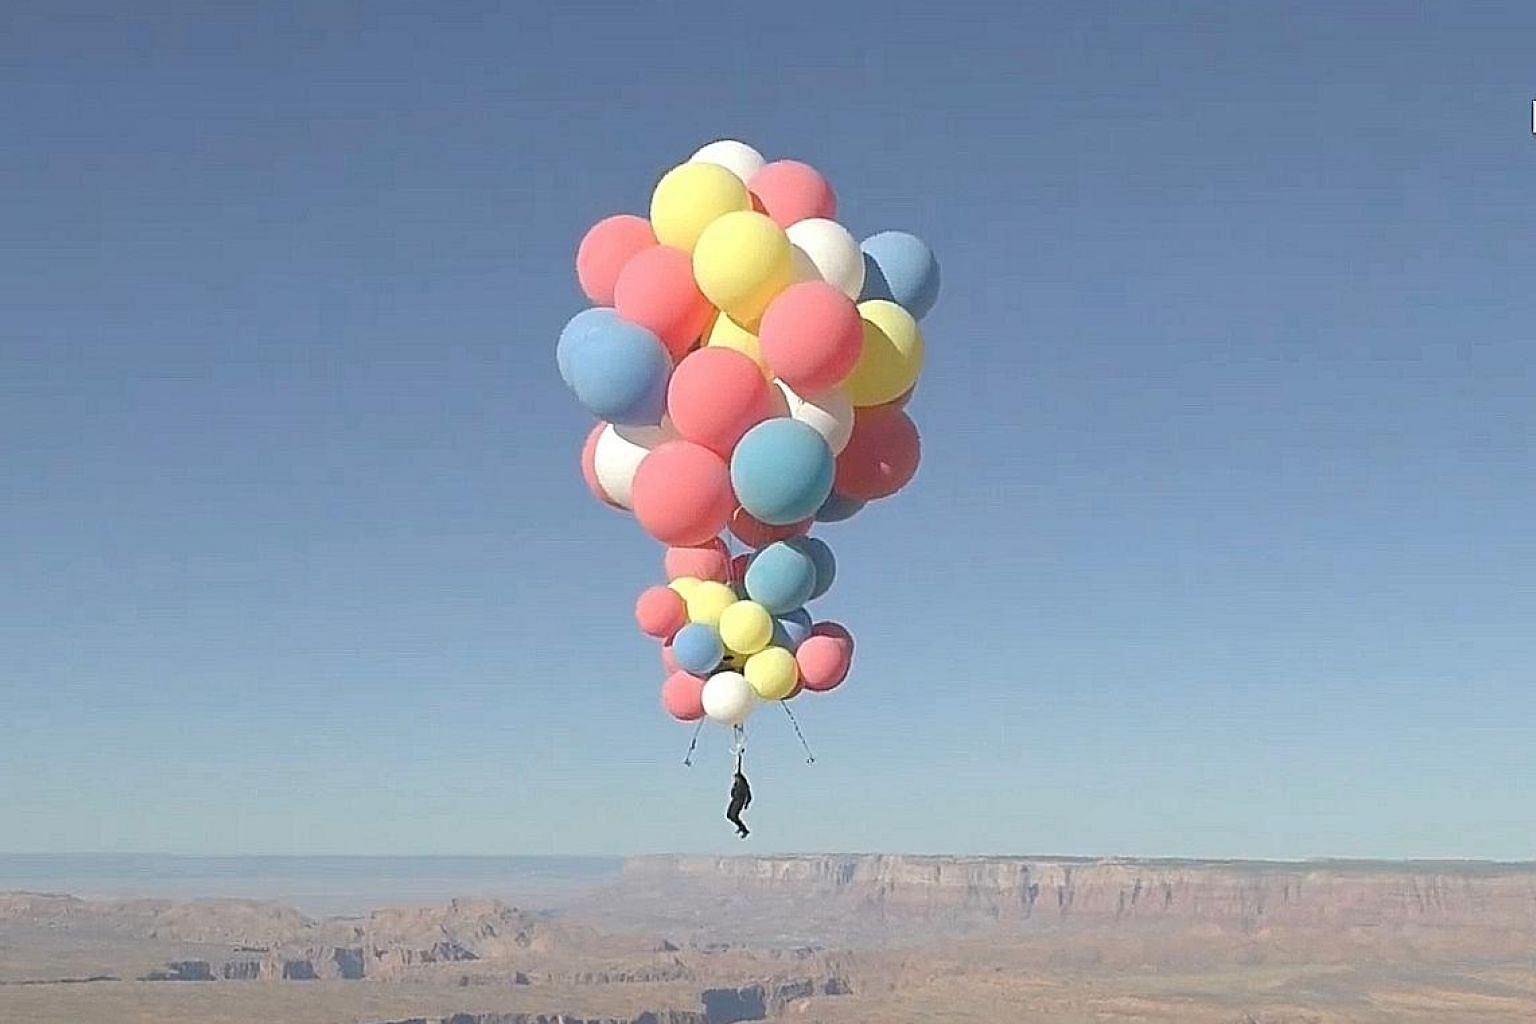 Extreme performer David Blaine flying over the desert in Page, Arizona, on Wednesday, aided by a parachute and a cluster of balloons.